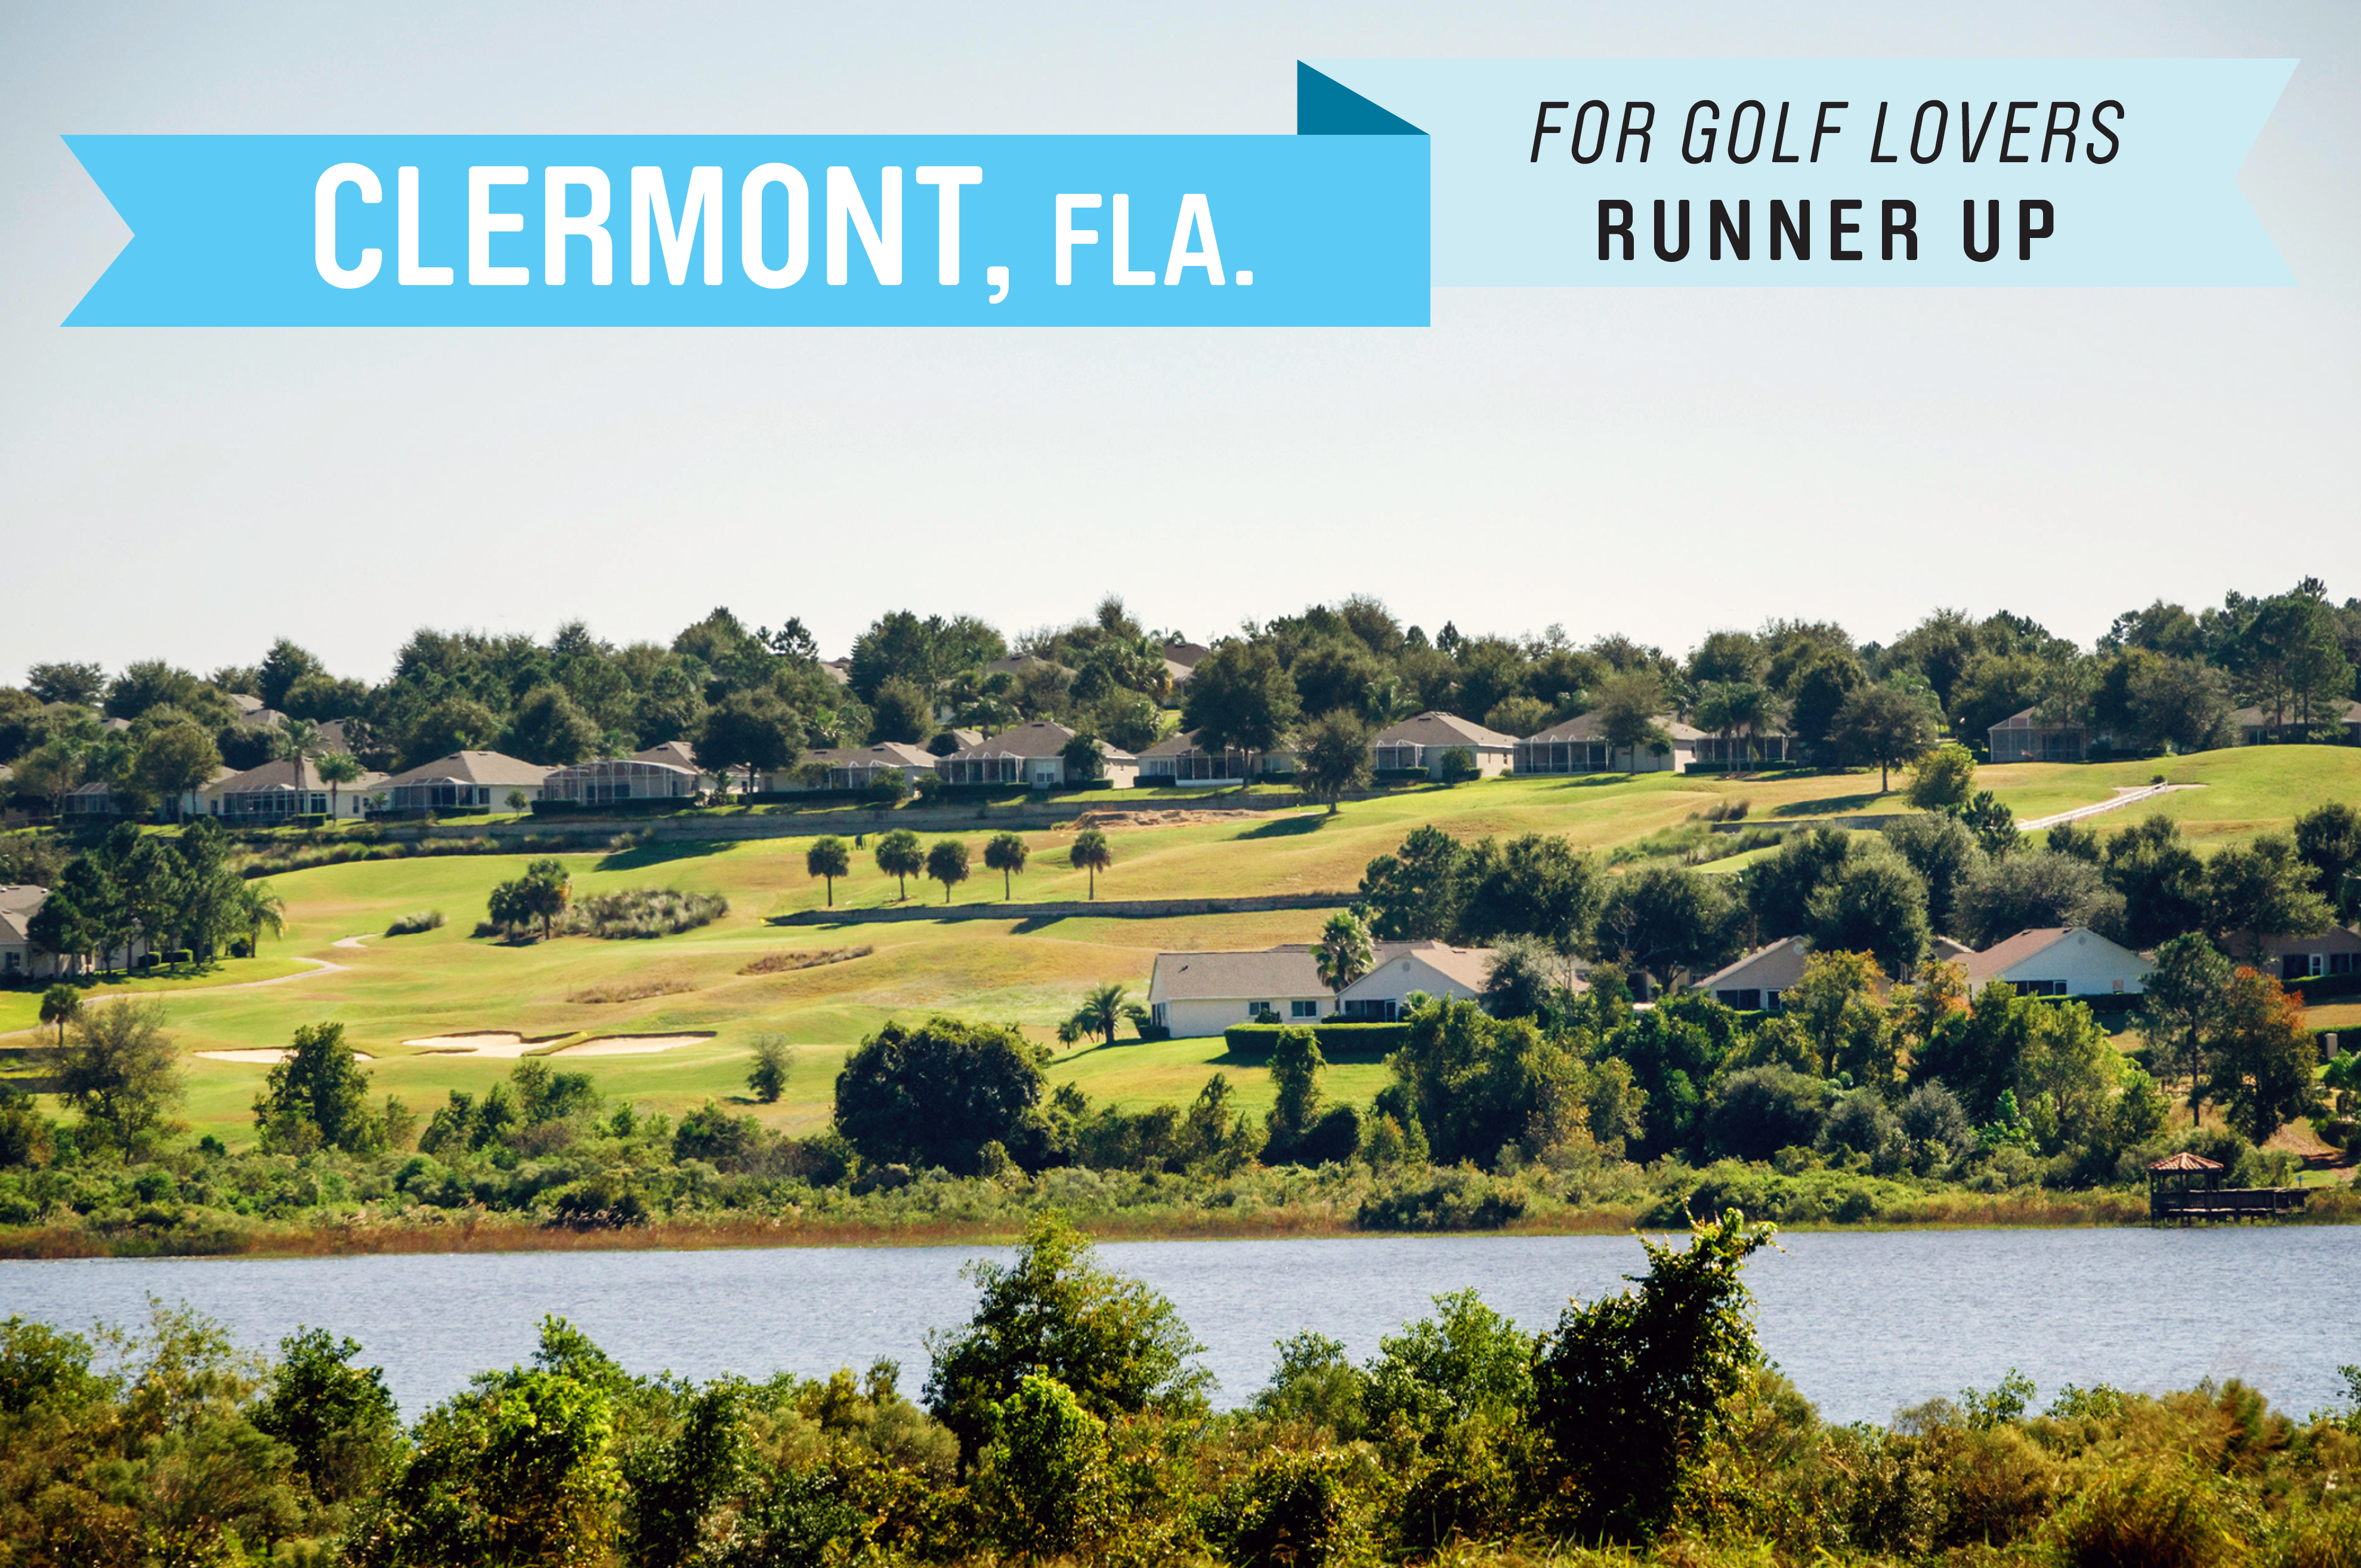 This town west of Orlando has nine public championship golf courses, many of them hilly by Florida standards. The median home costs $190,000, and there is no state income tax.